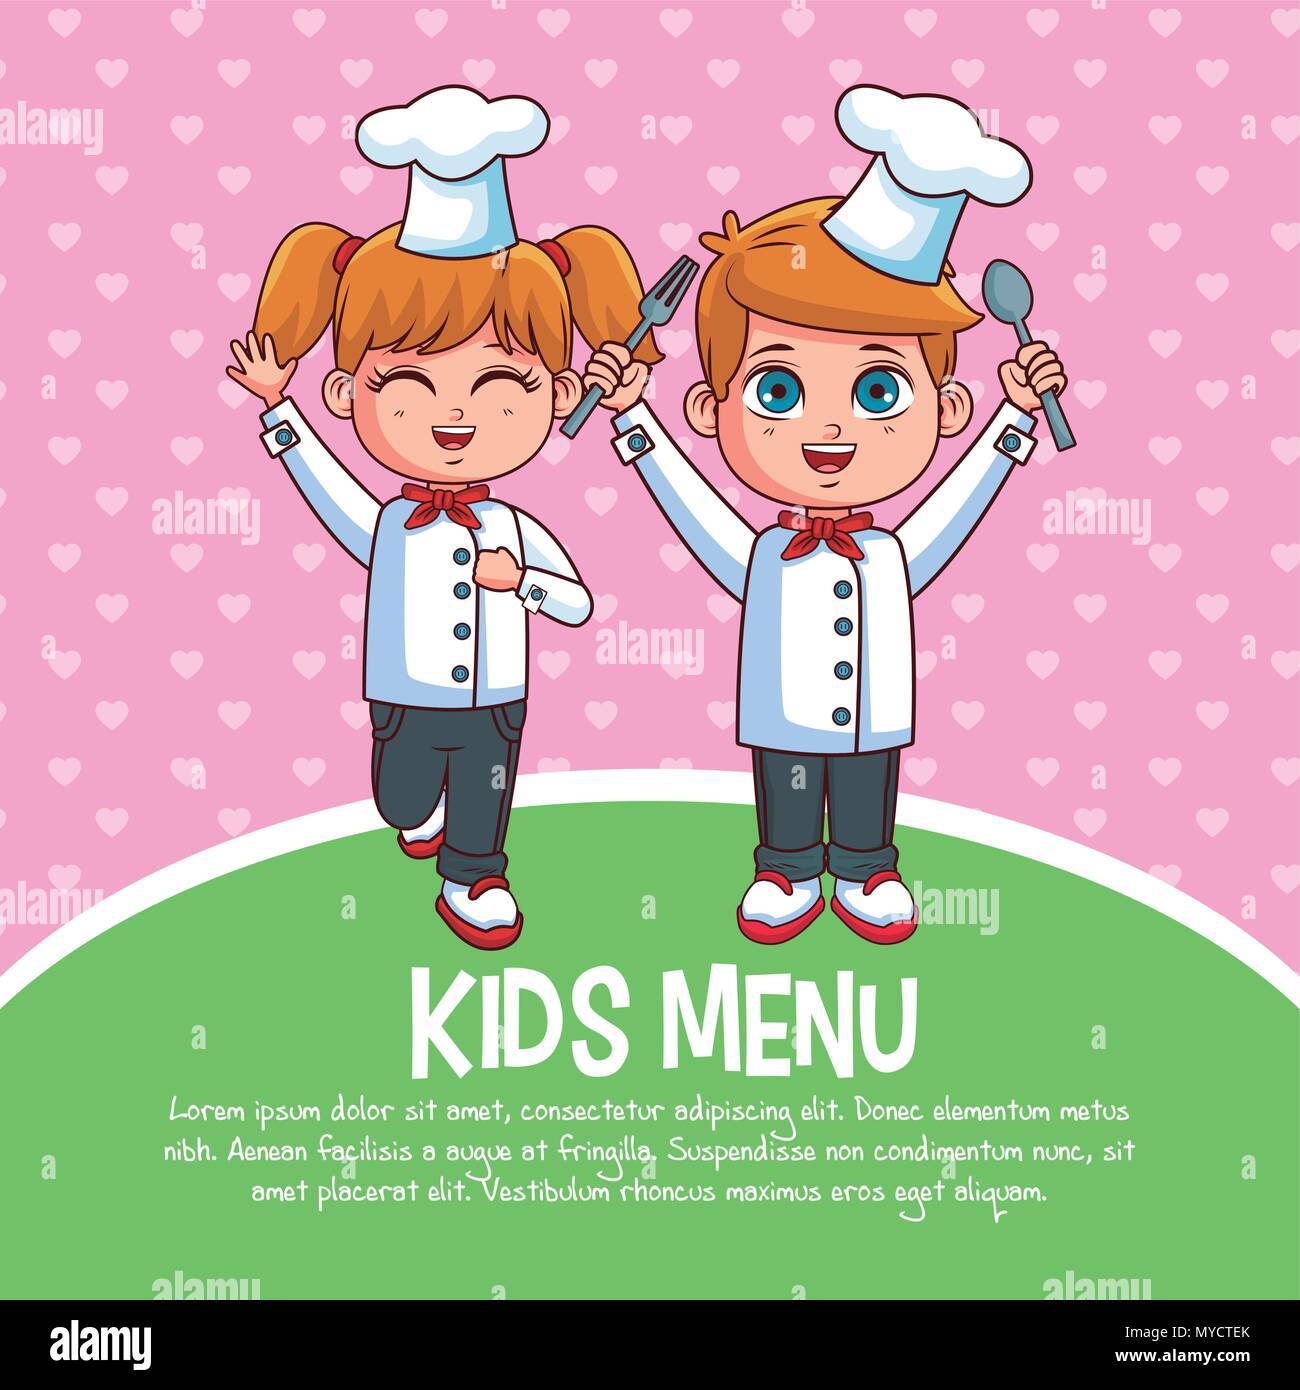 kids menu template stock vector art illustration vector image